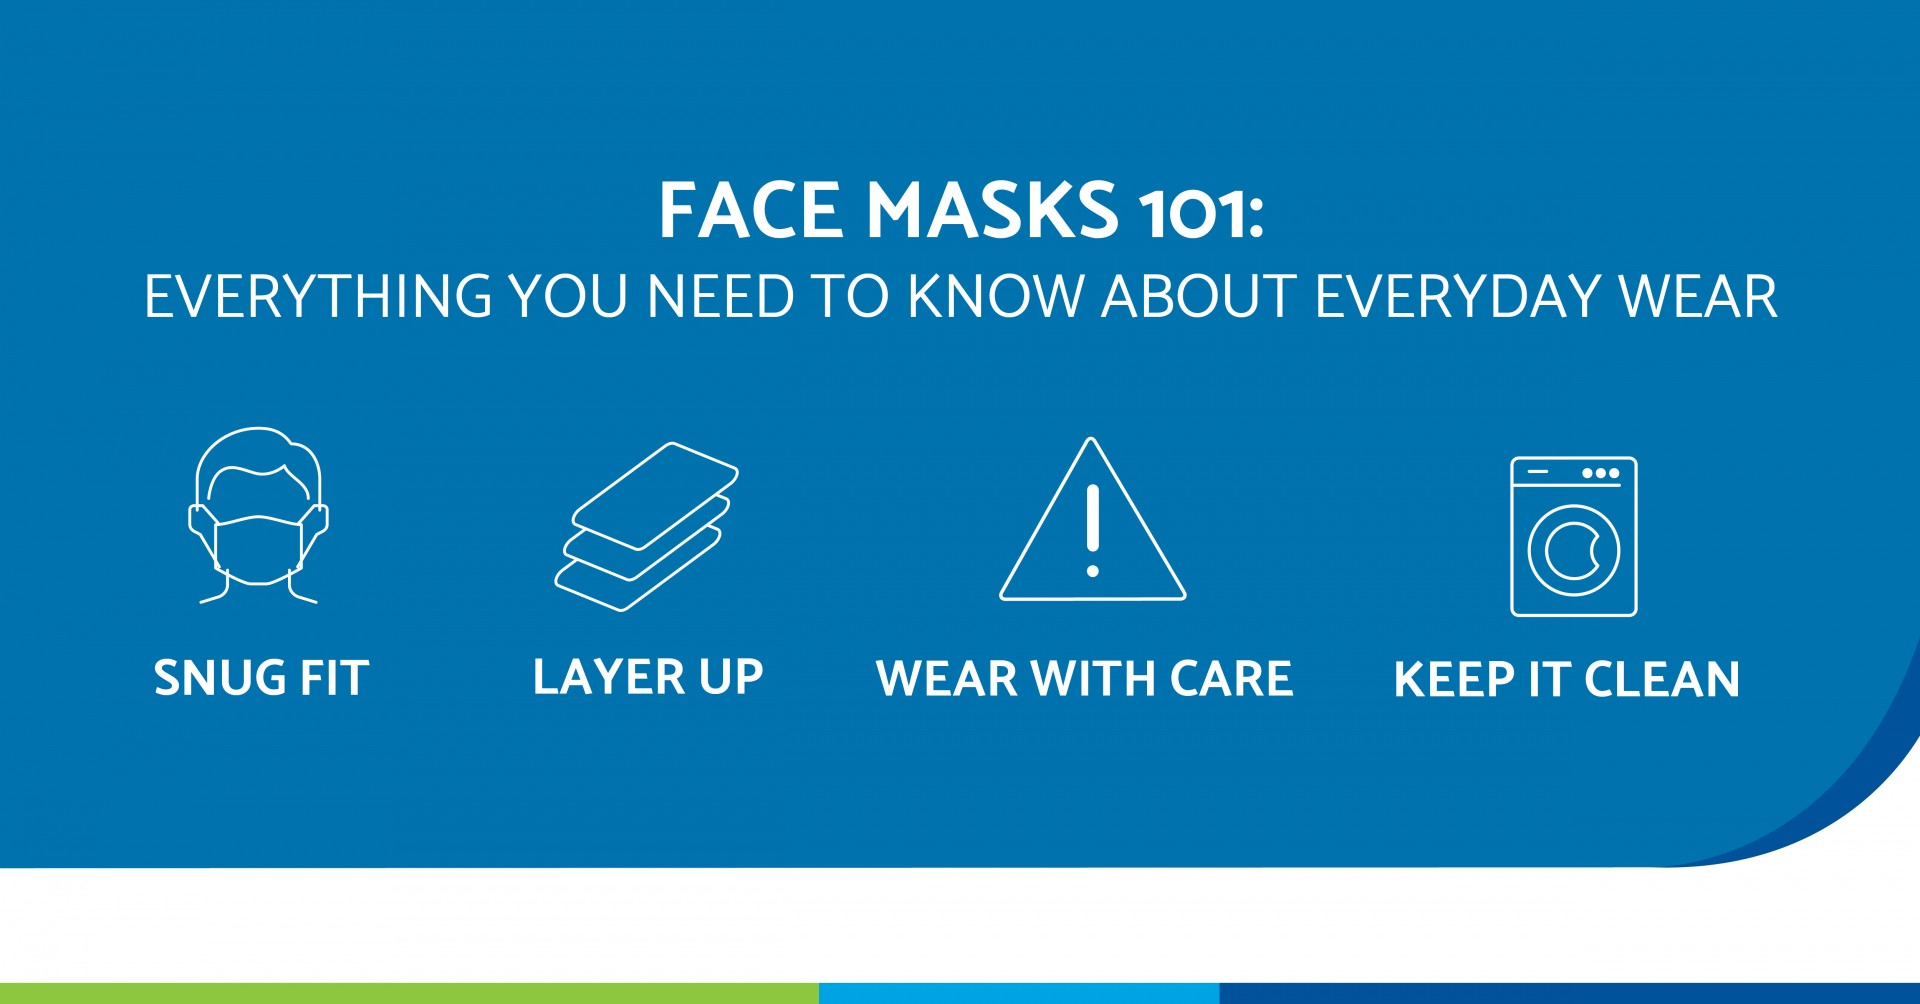 N11752 Everyday Face Masks 101 Infographic_1200x628 no logo